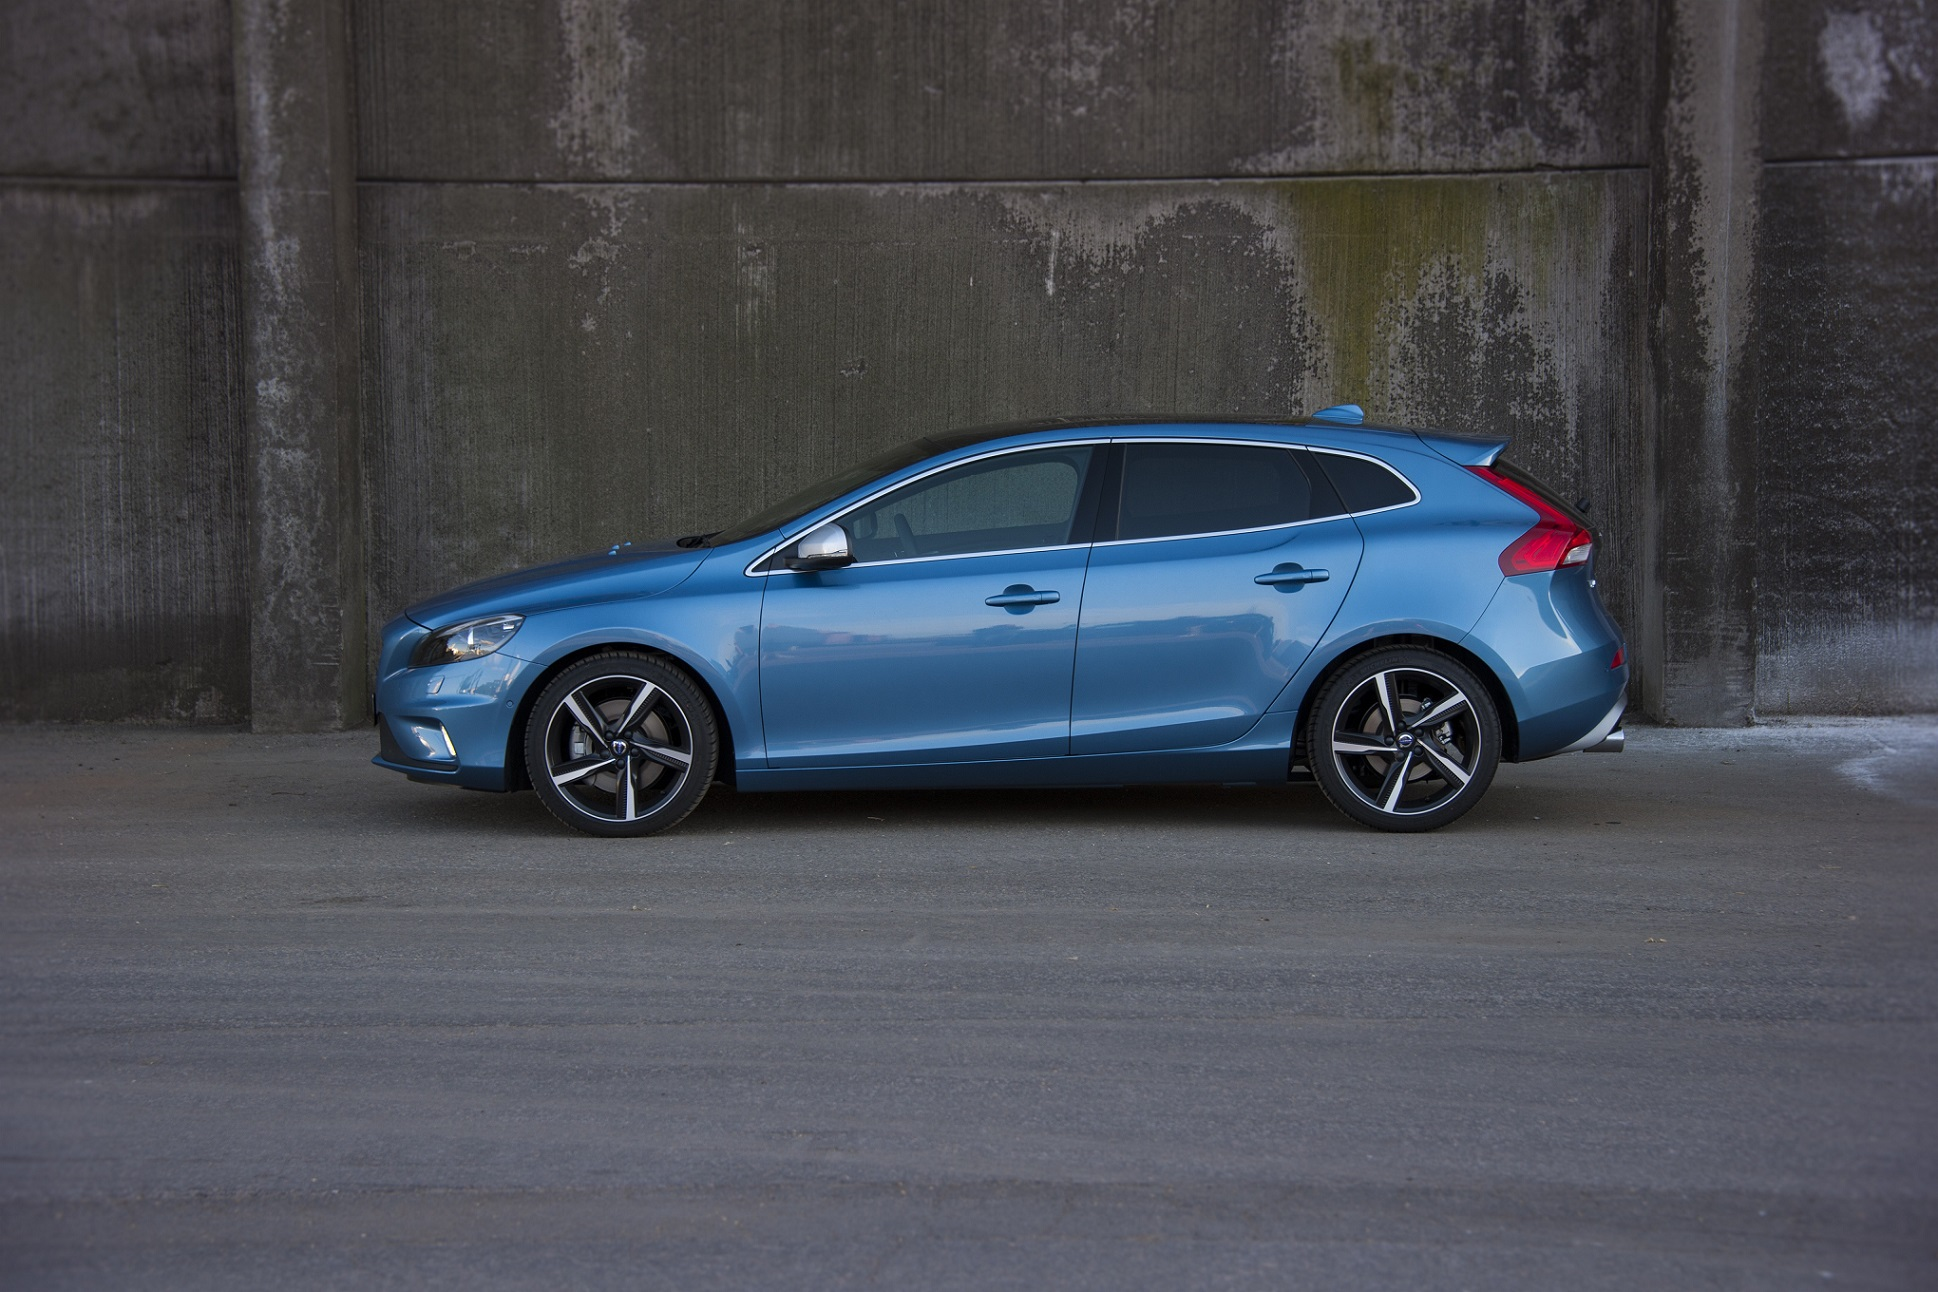 Volvo V40 R-Design - model year 2016